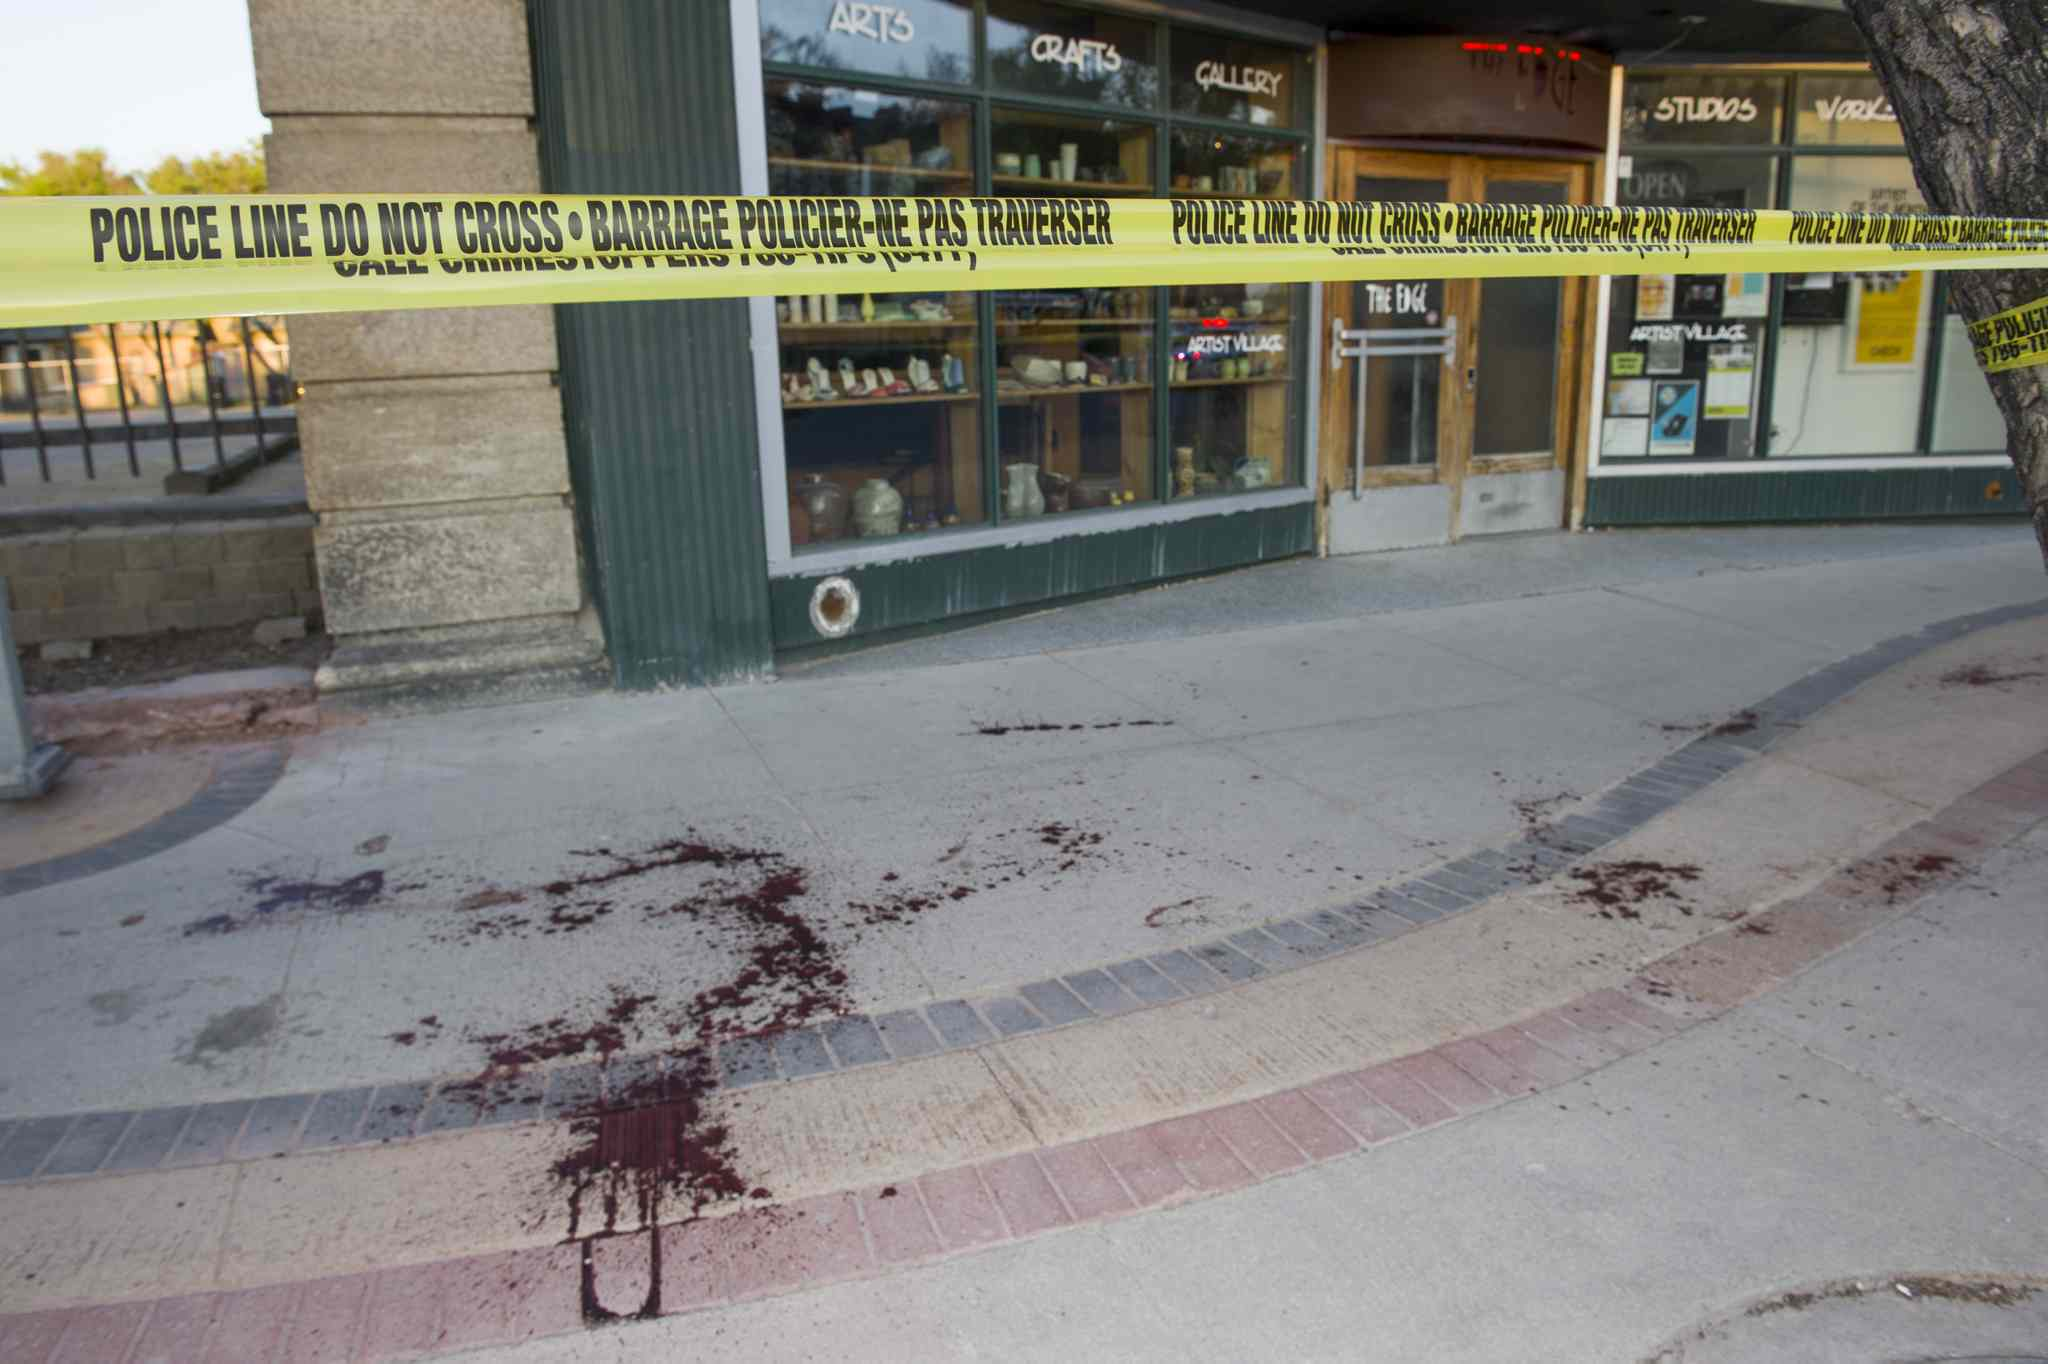 Blood spatters can be seen on the east sidewalk of Main Street between Alexander and Logan avenues.